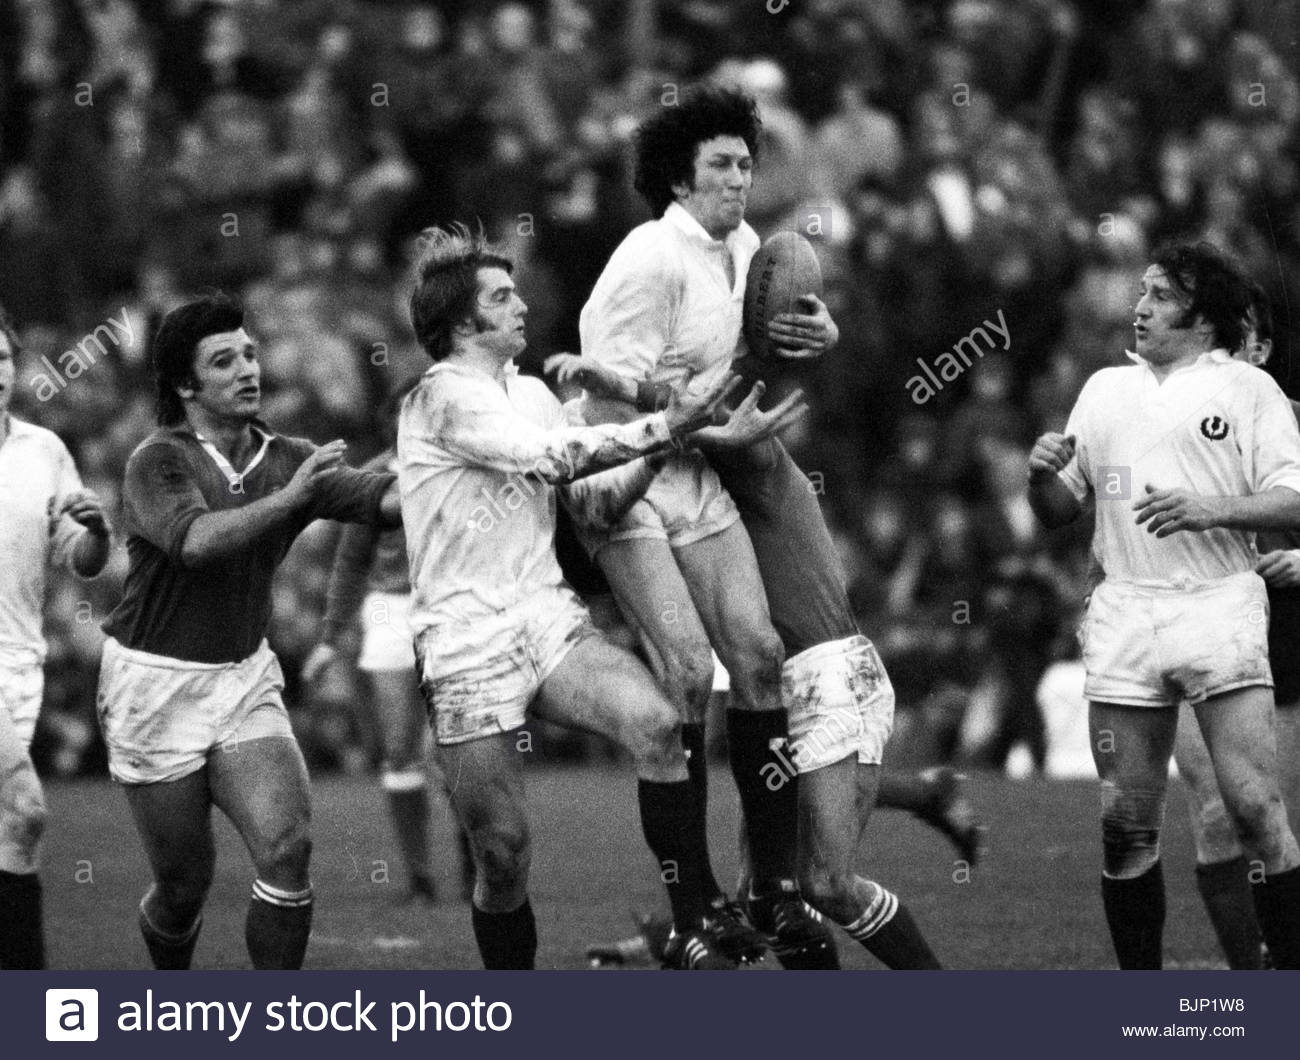 10/01/76 FIVE NATIONS SCOTLAND V FRANCE (6-13) MURRAYFIELD - EDINBURGH George Mackie secures possession for Scotland. - Stock Image